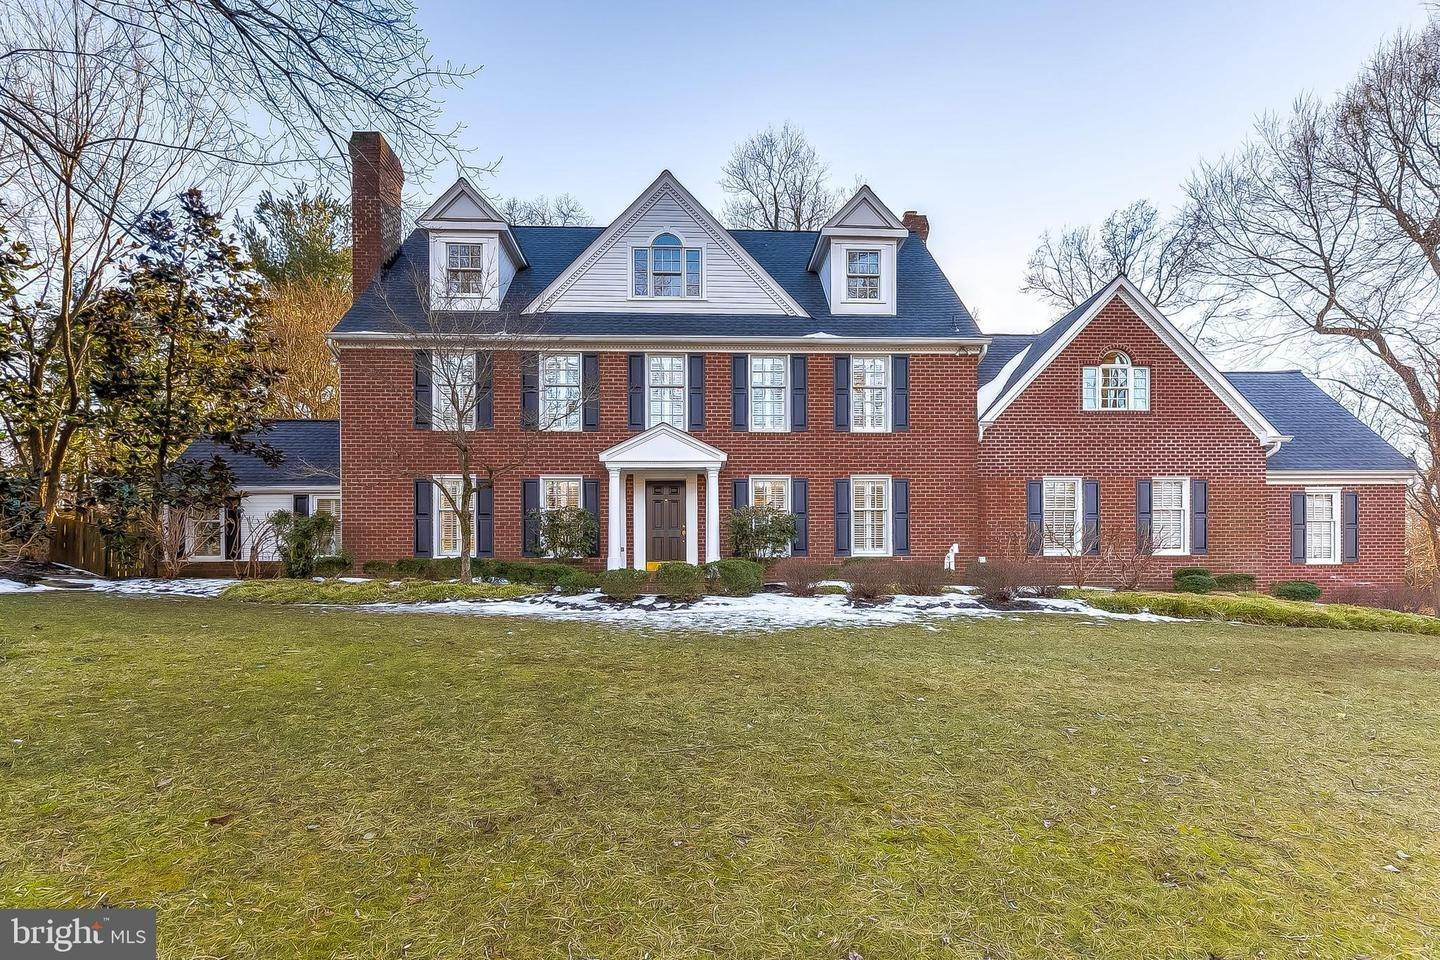 2. Single Family Homes om Severna Park, Maryland, 21146 Verenigde Staten